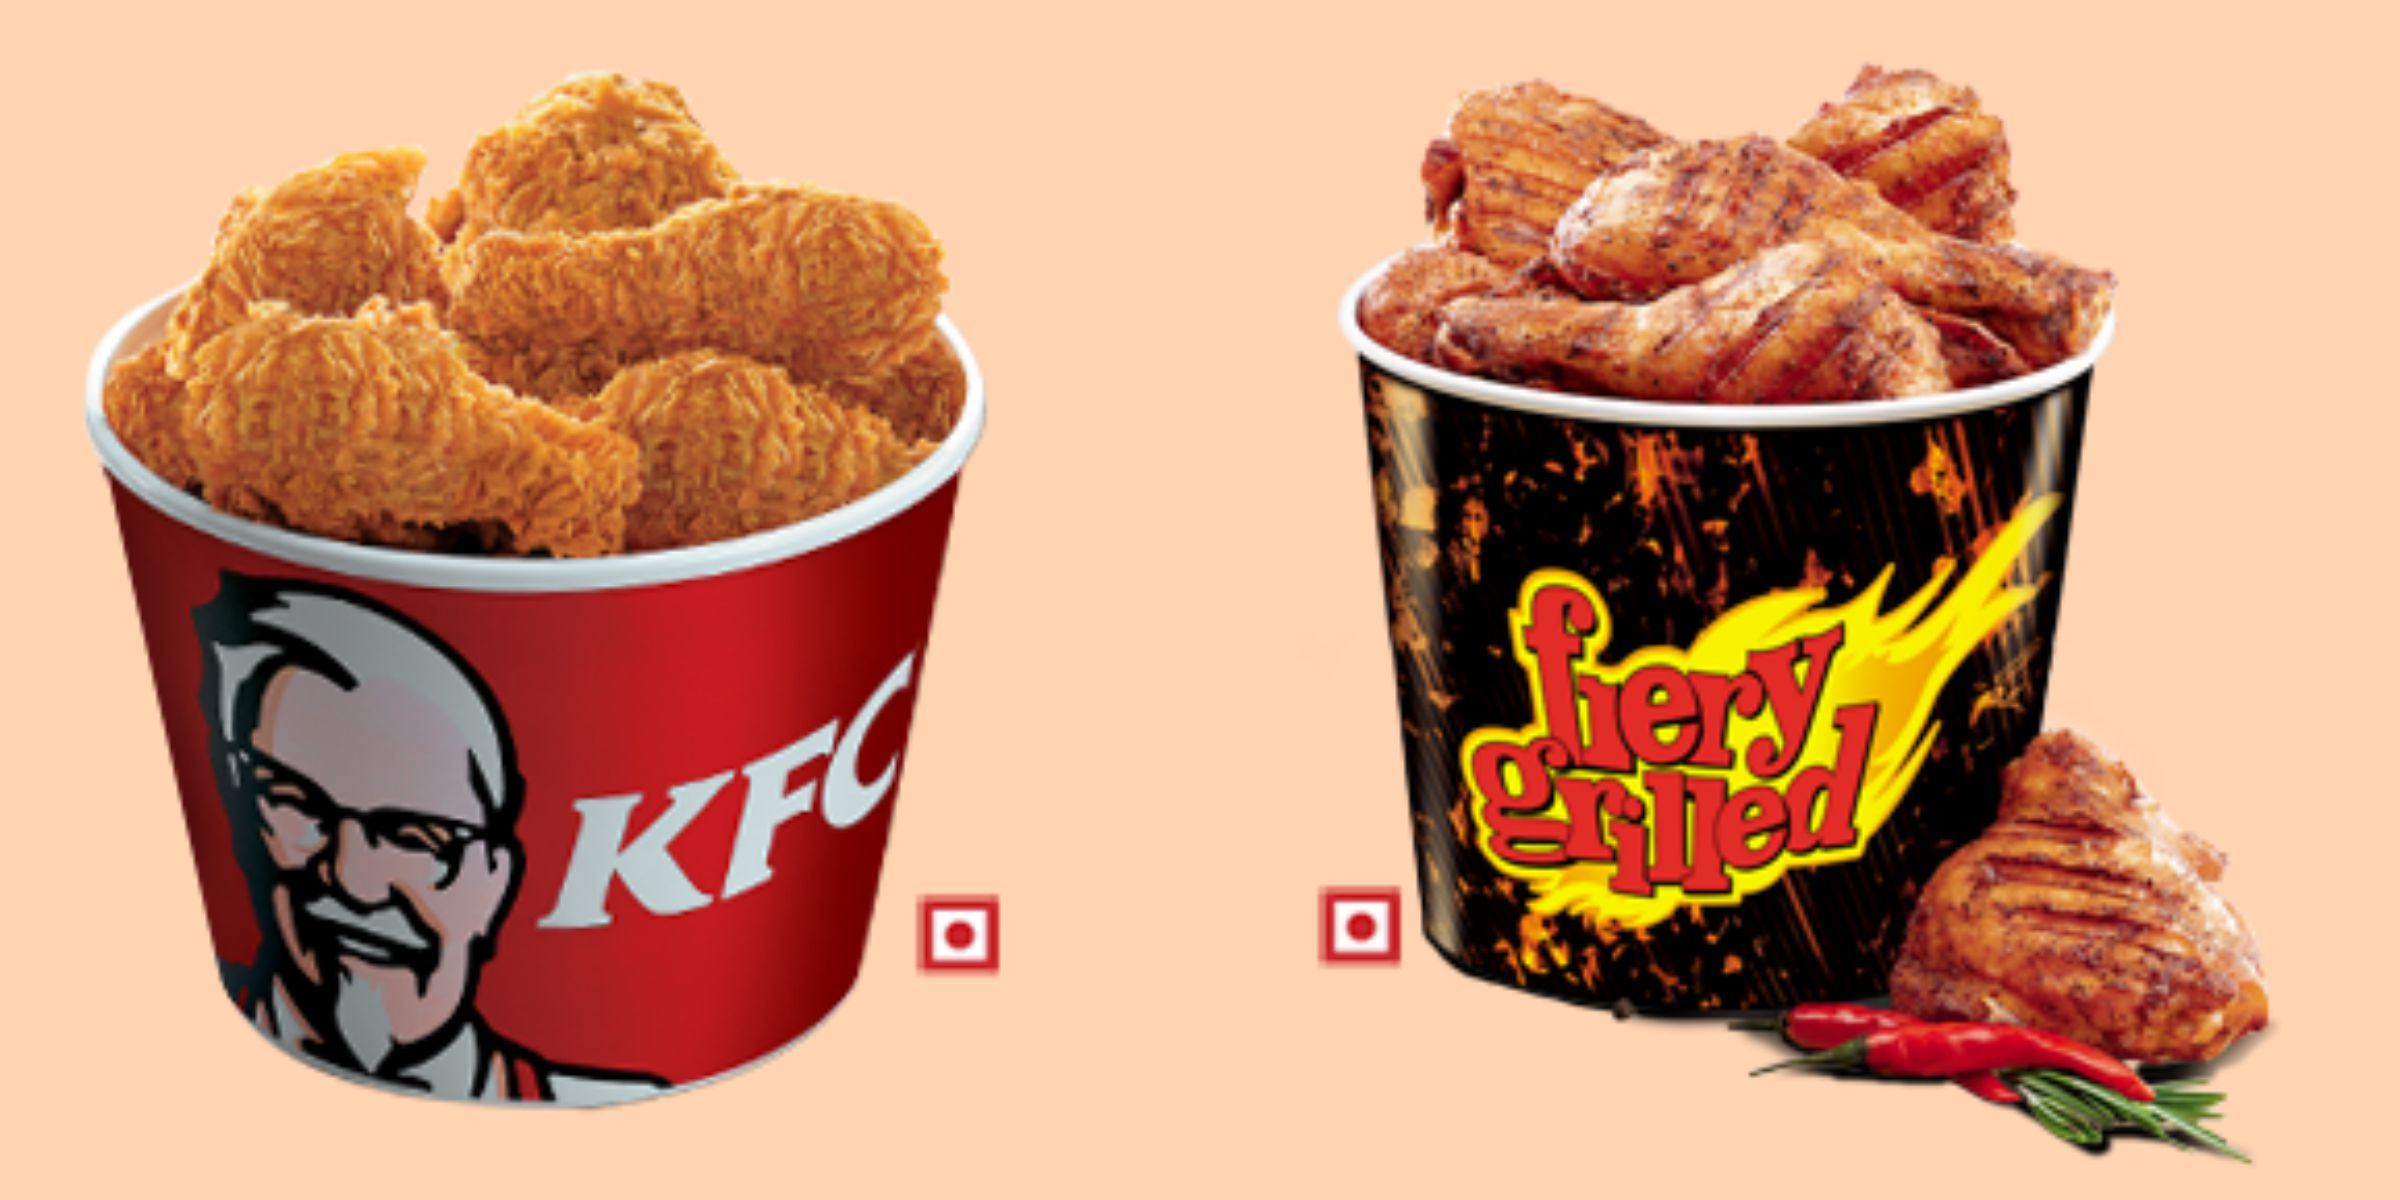 kfc menu bucket bing images